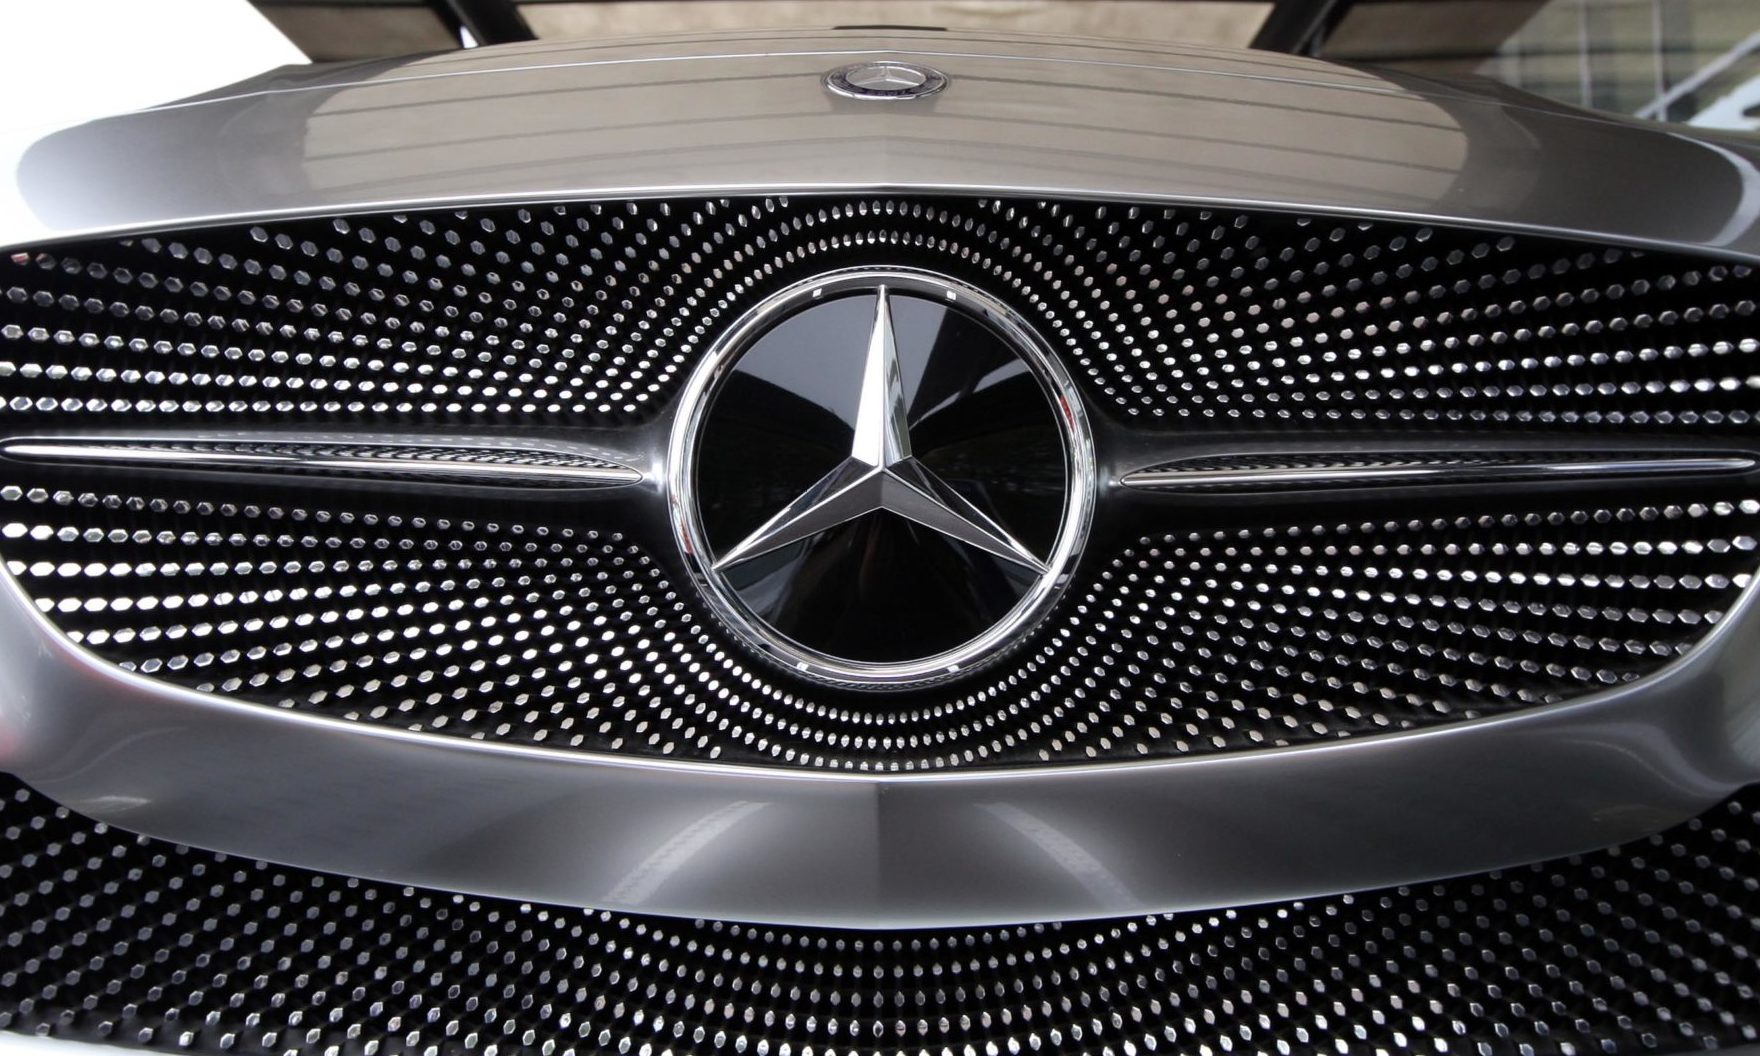 Stock photo of the Mercedes badge.